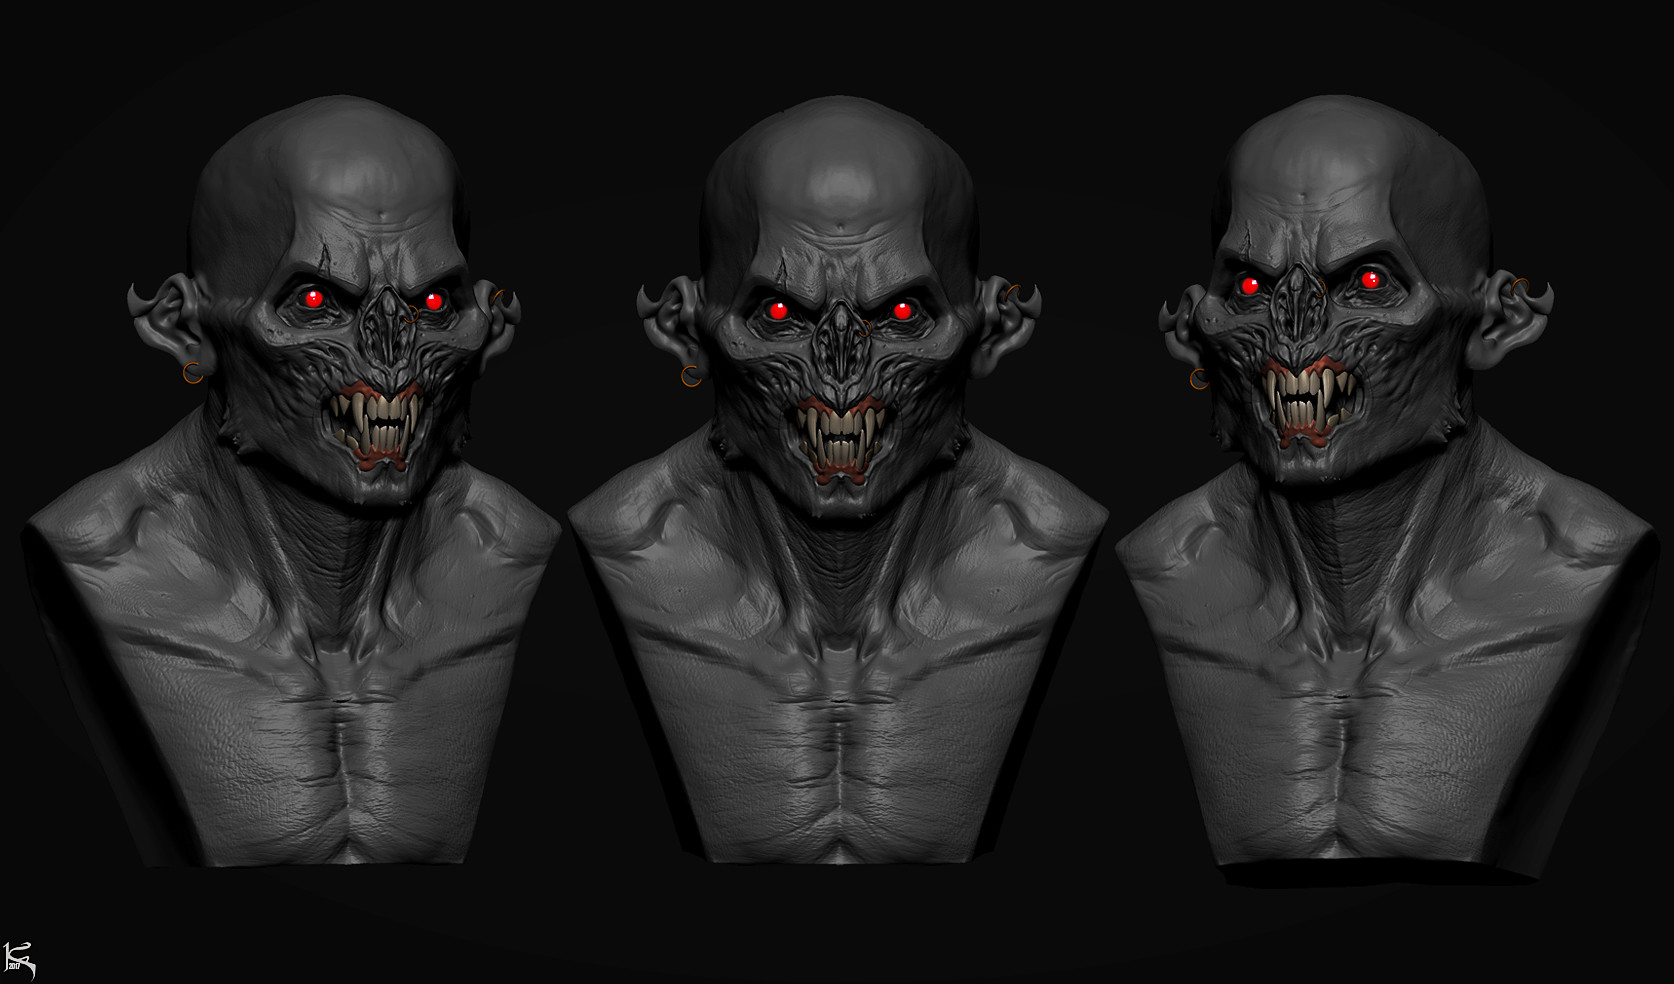 kenny-carmody-creature06-zbrush-screengrab-bw.jpg